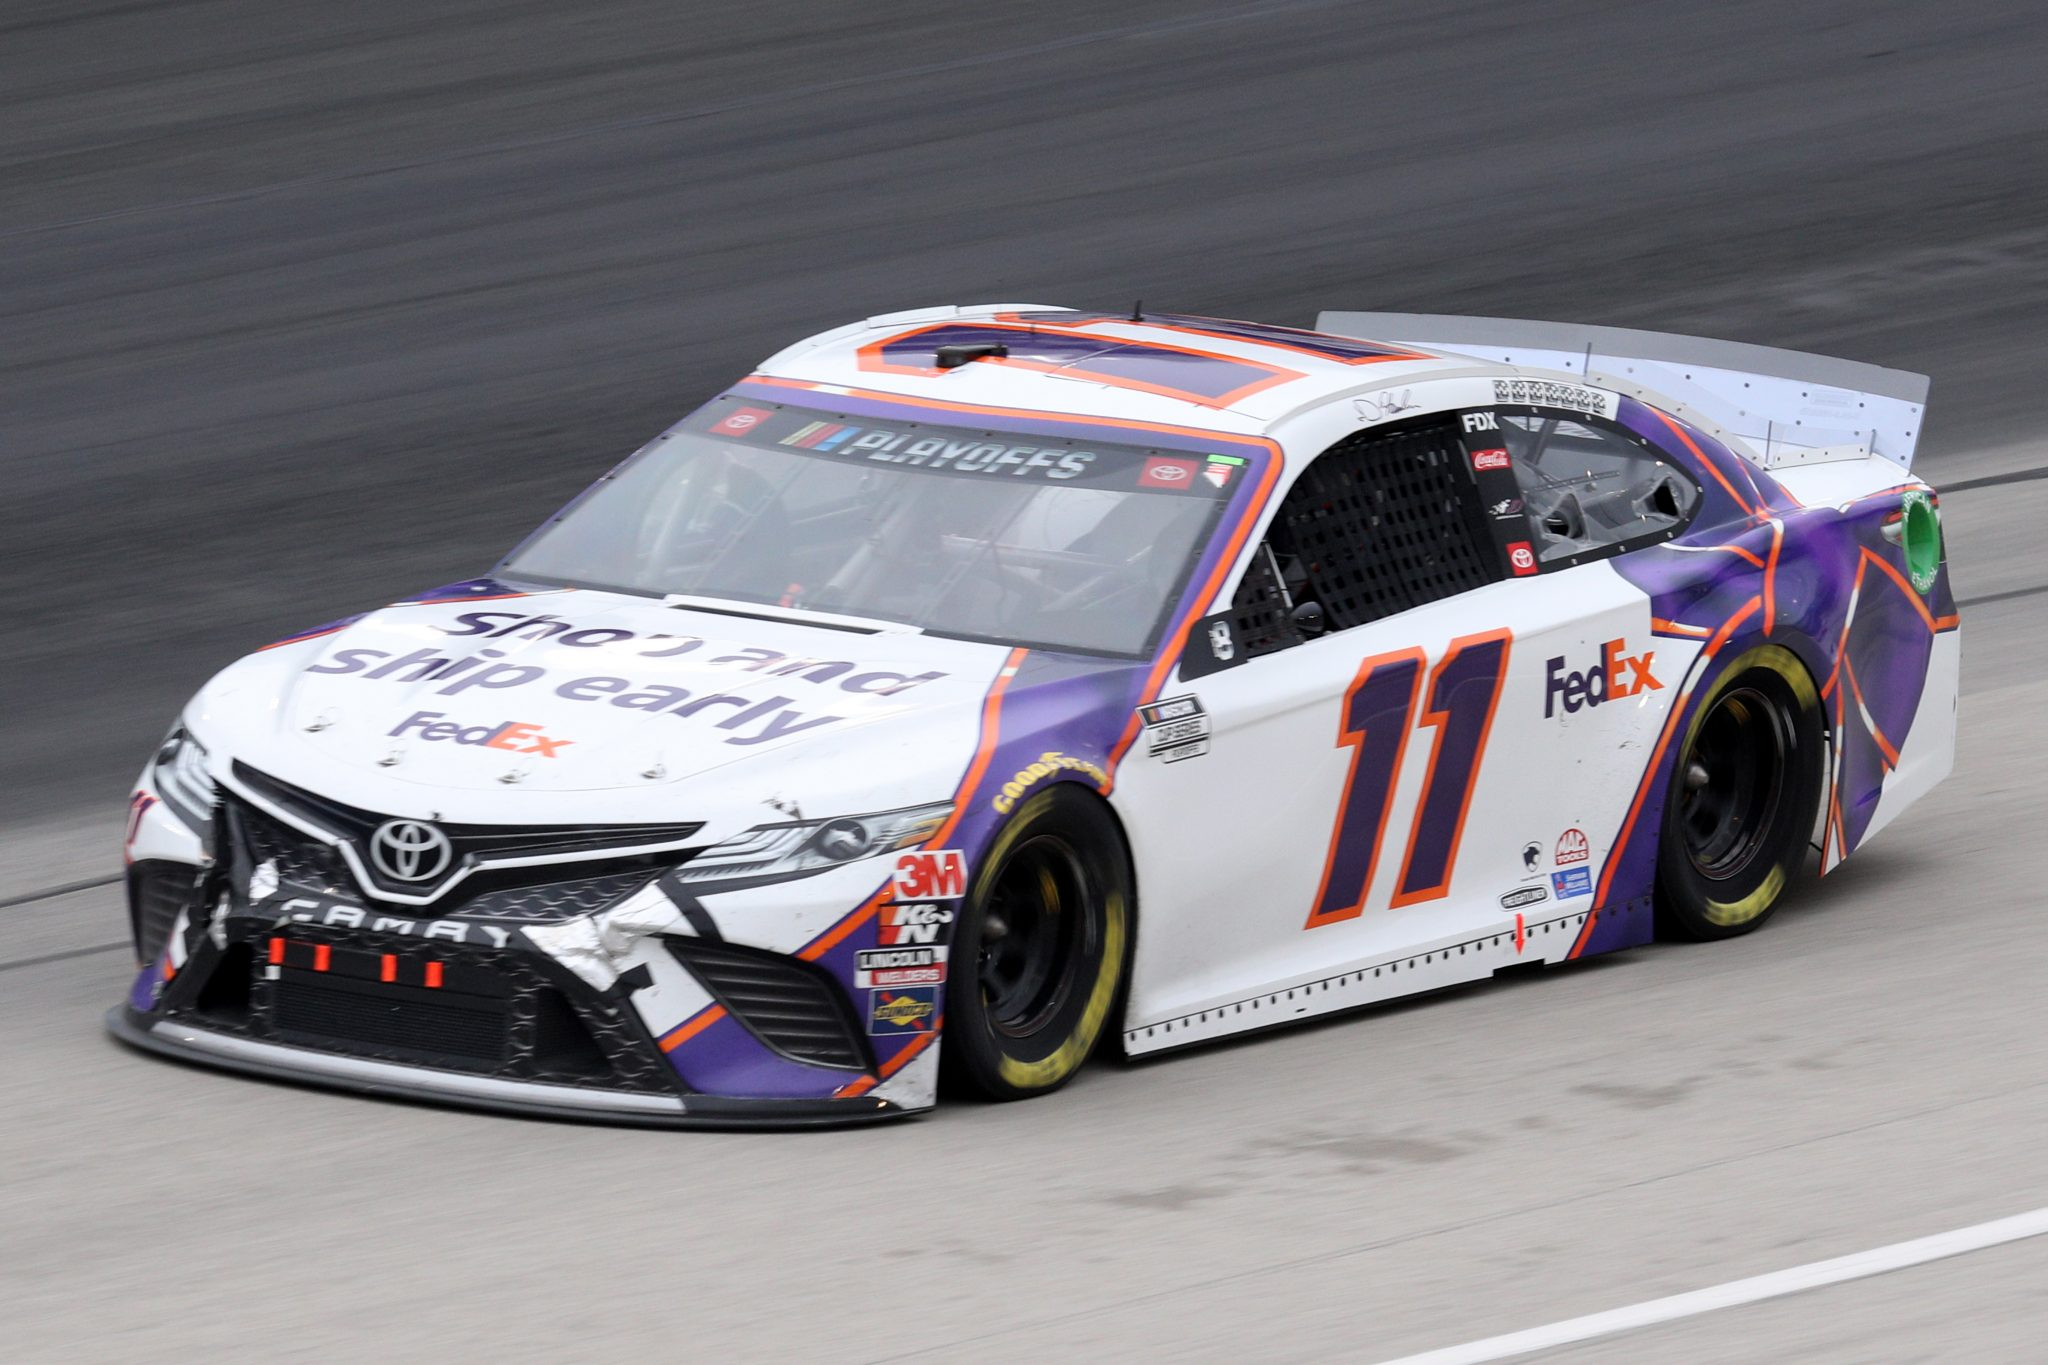 FORT WORTH, TEXAS - OCTOBER 28: Denny Hamlin, driver of the #11 FedEx Shipathon Toyota, drives during the NASCAR Cup Series Autotrader EchoPark Automotive 500 at Texas Motor Speedway on October 28, 2020 in Fort Worth, Texas. (Photo by Chris Graythen/Getty Images) | Getty Images